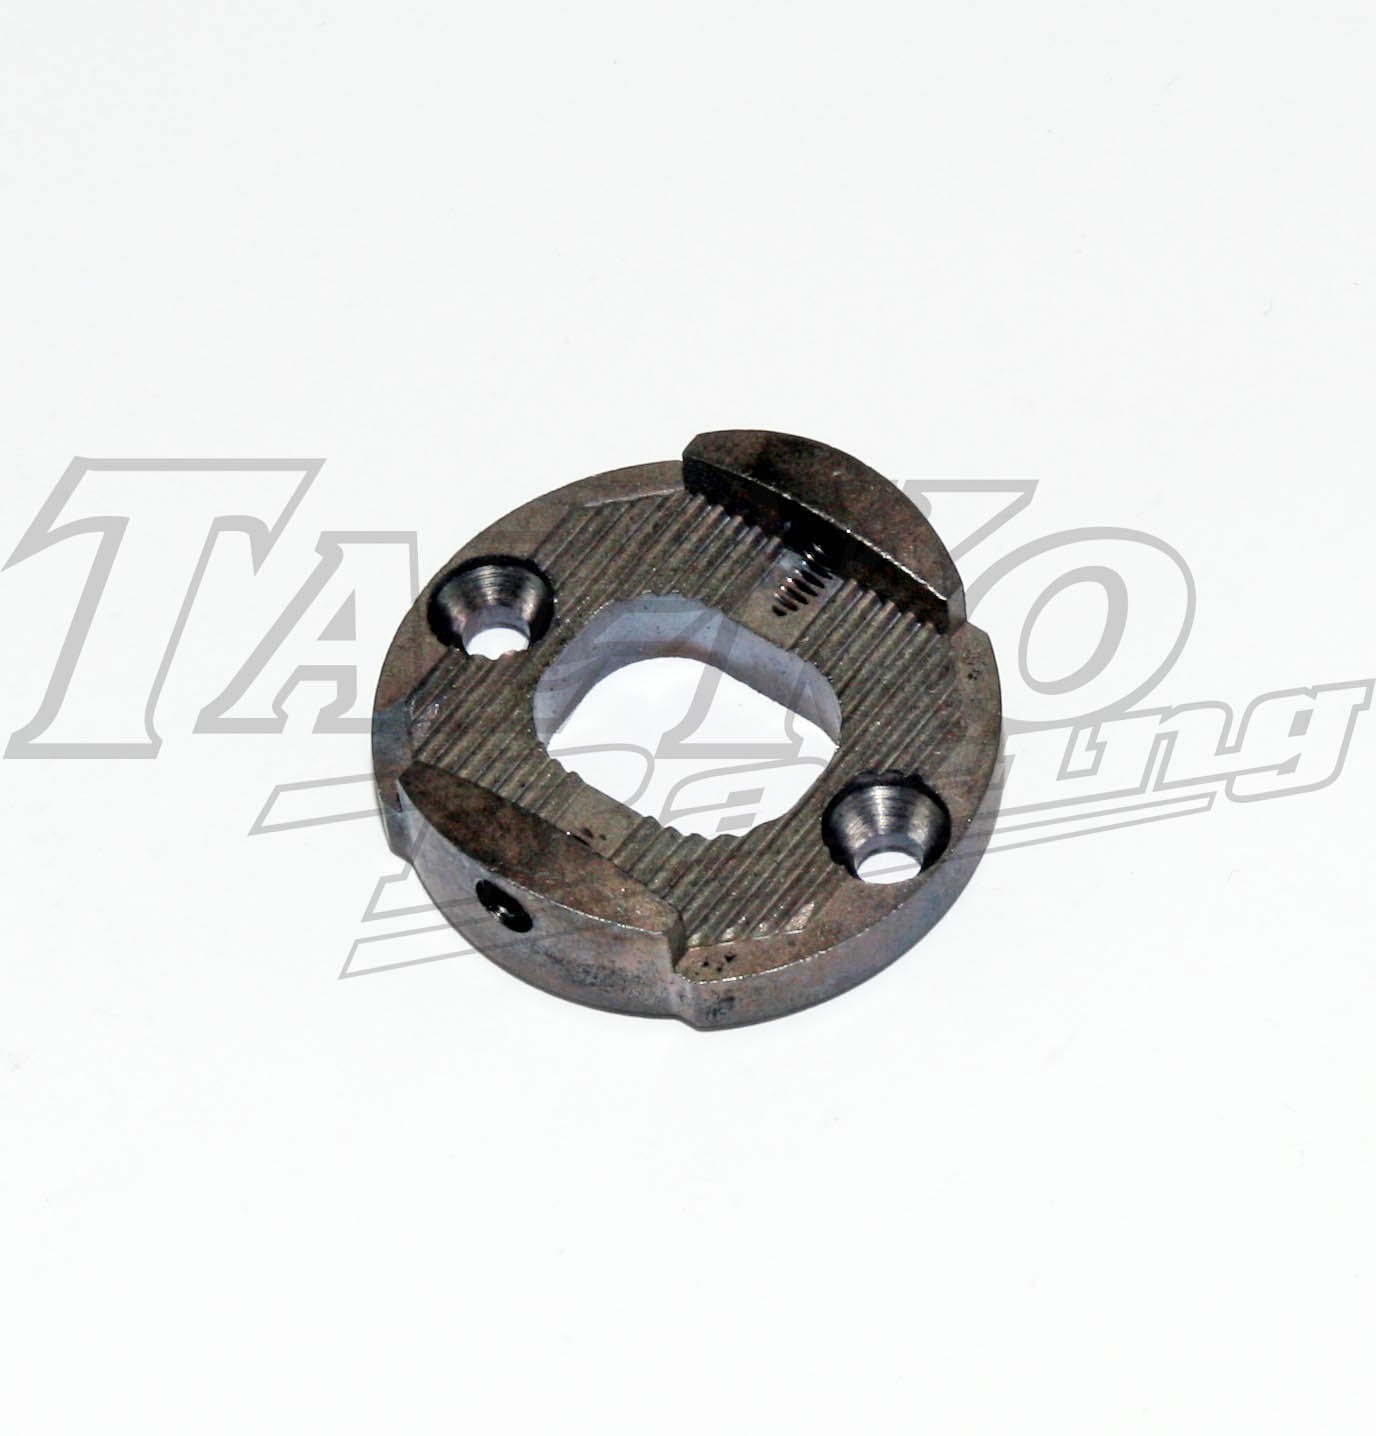 CRG STUB AXLE CASTER PLATE SUPPORT A